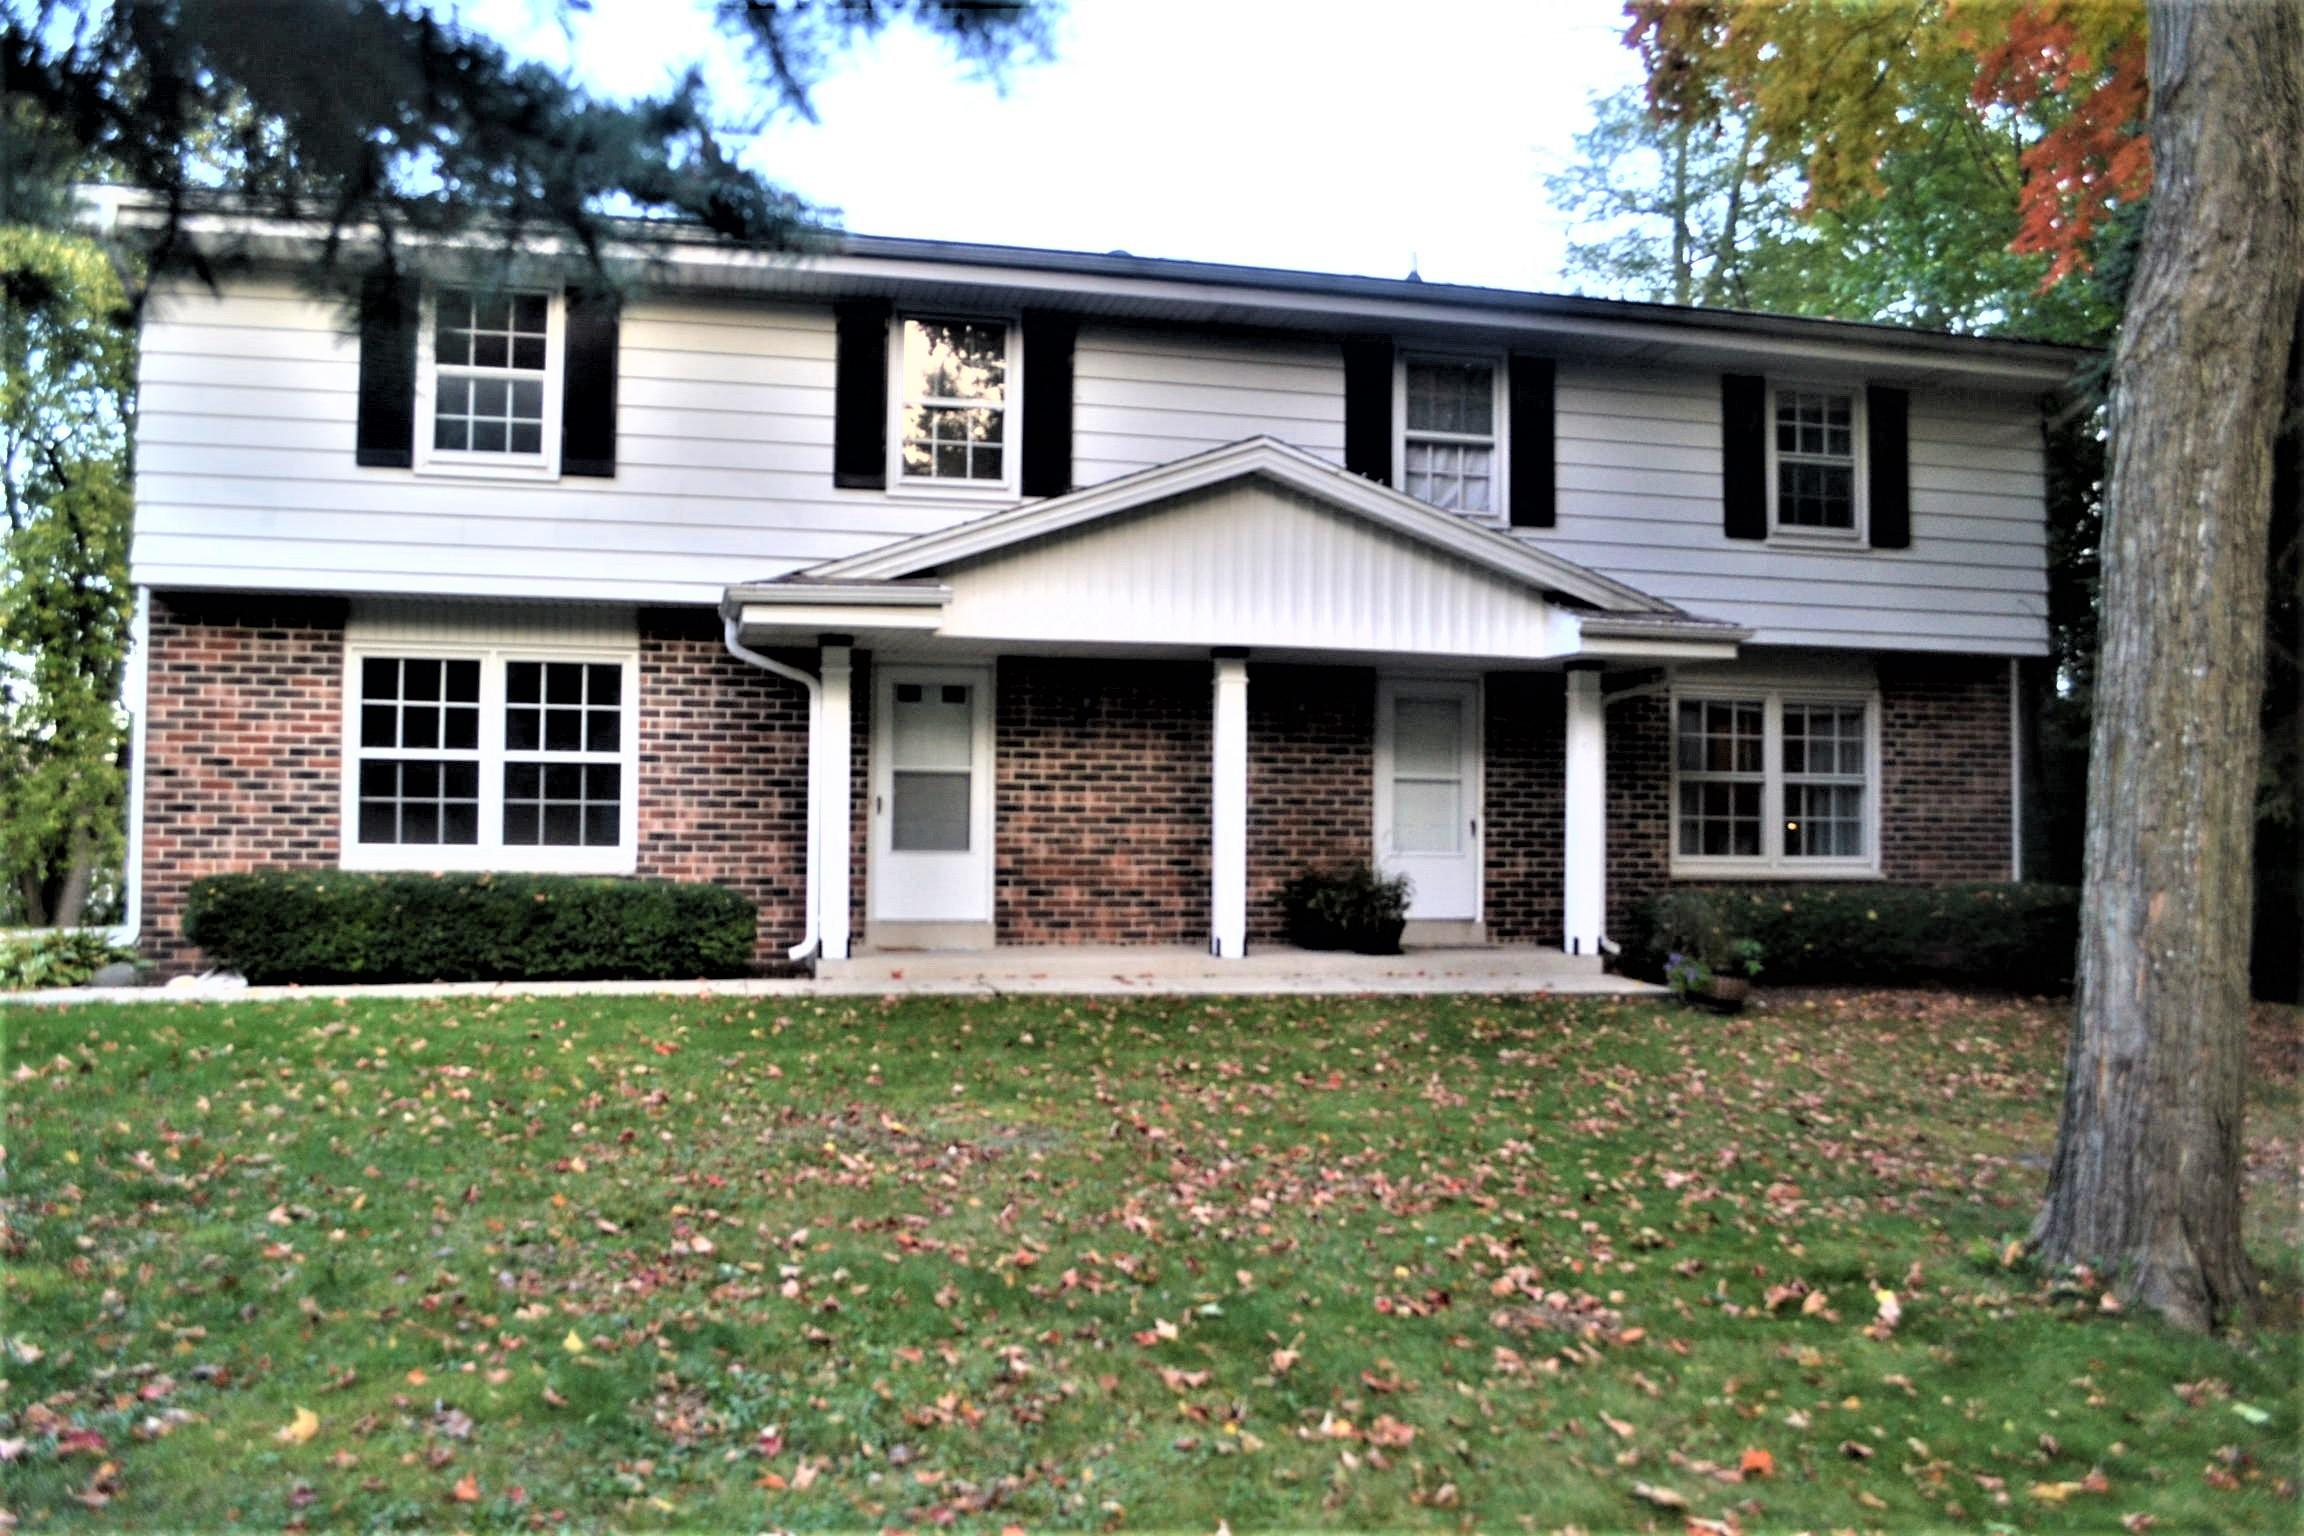 Photo of 560 Meadow Ct #570, Brookfield, WI 53045